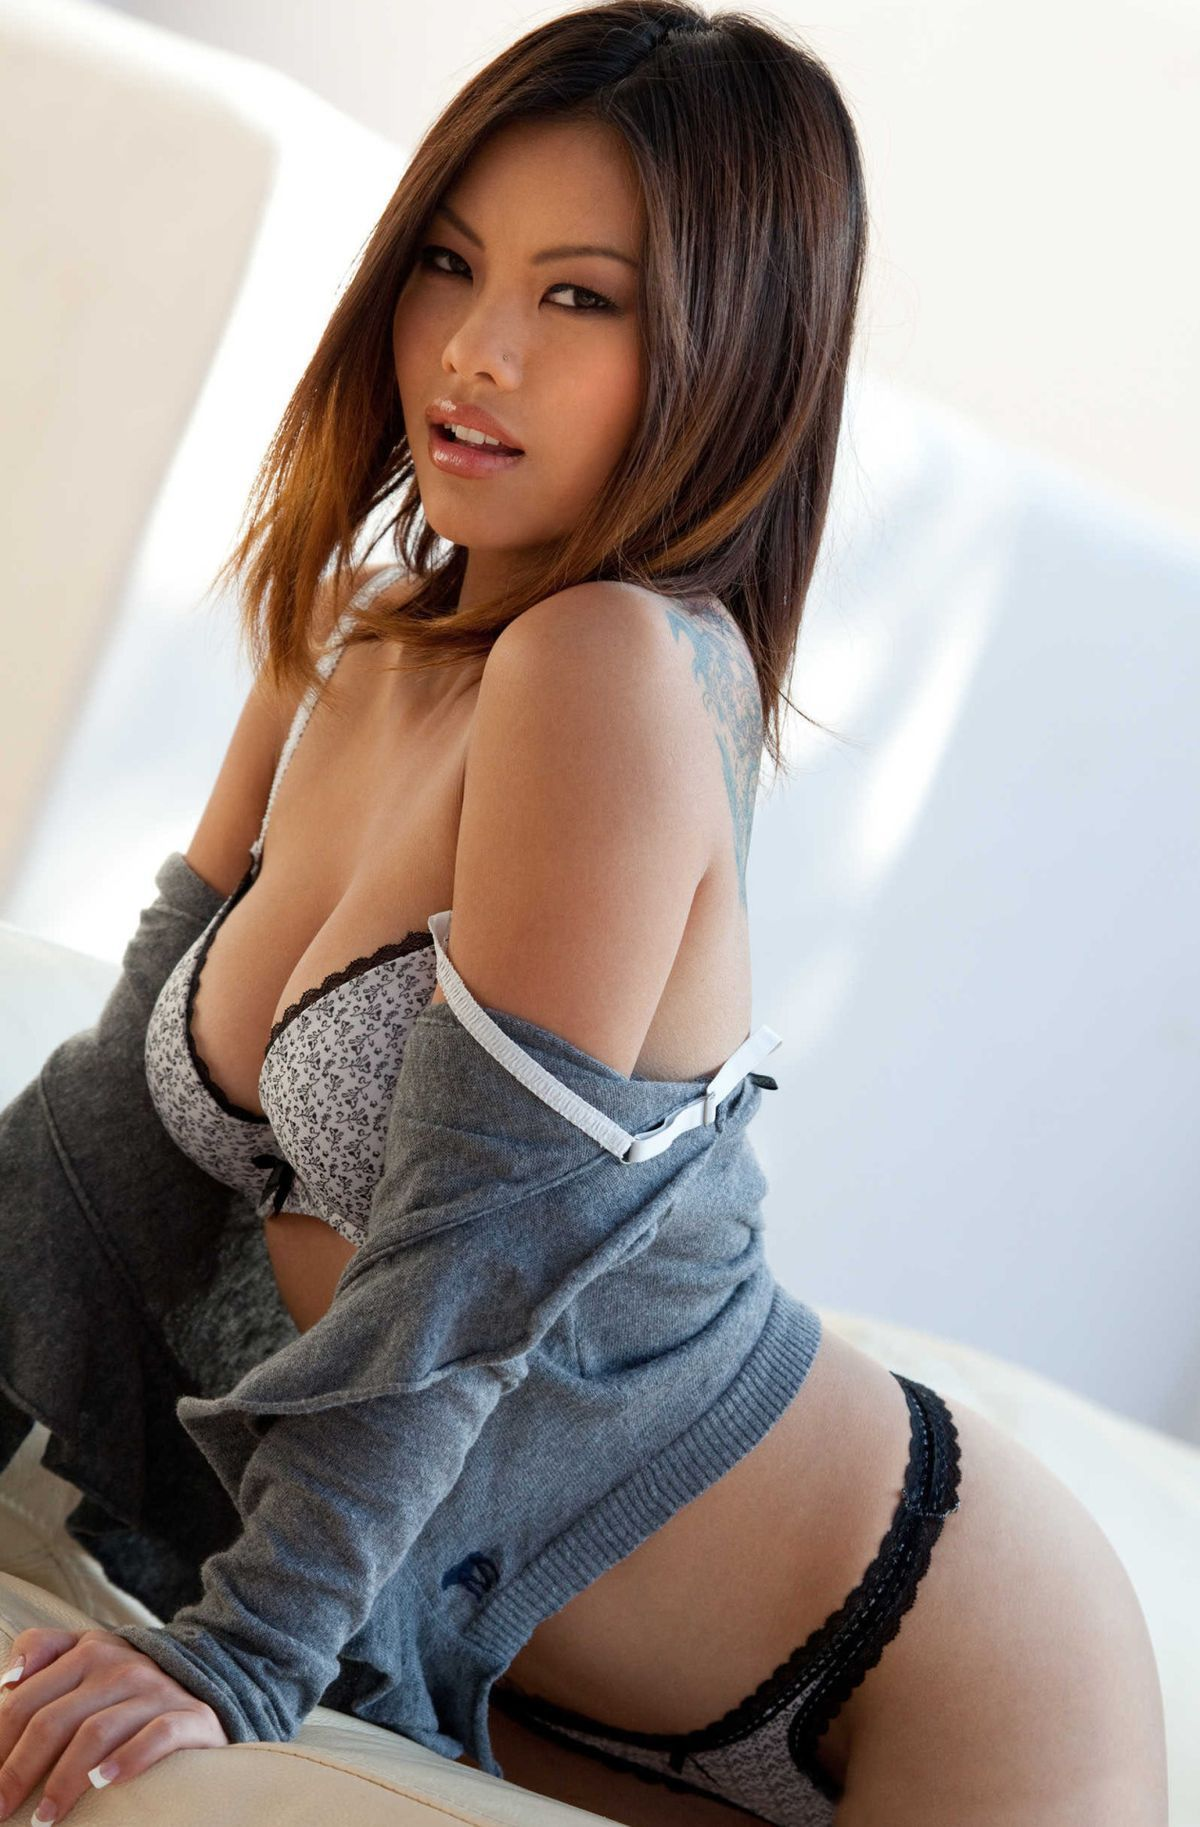 hot girl fuck asians